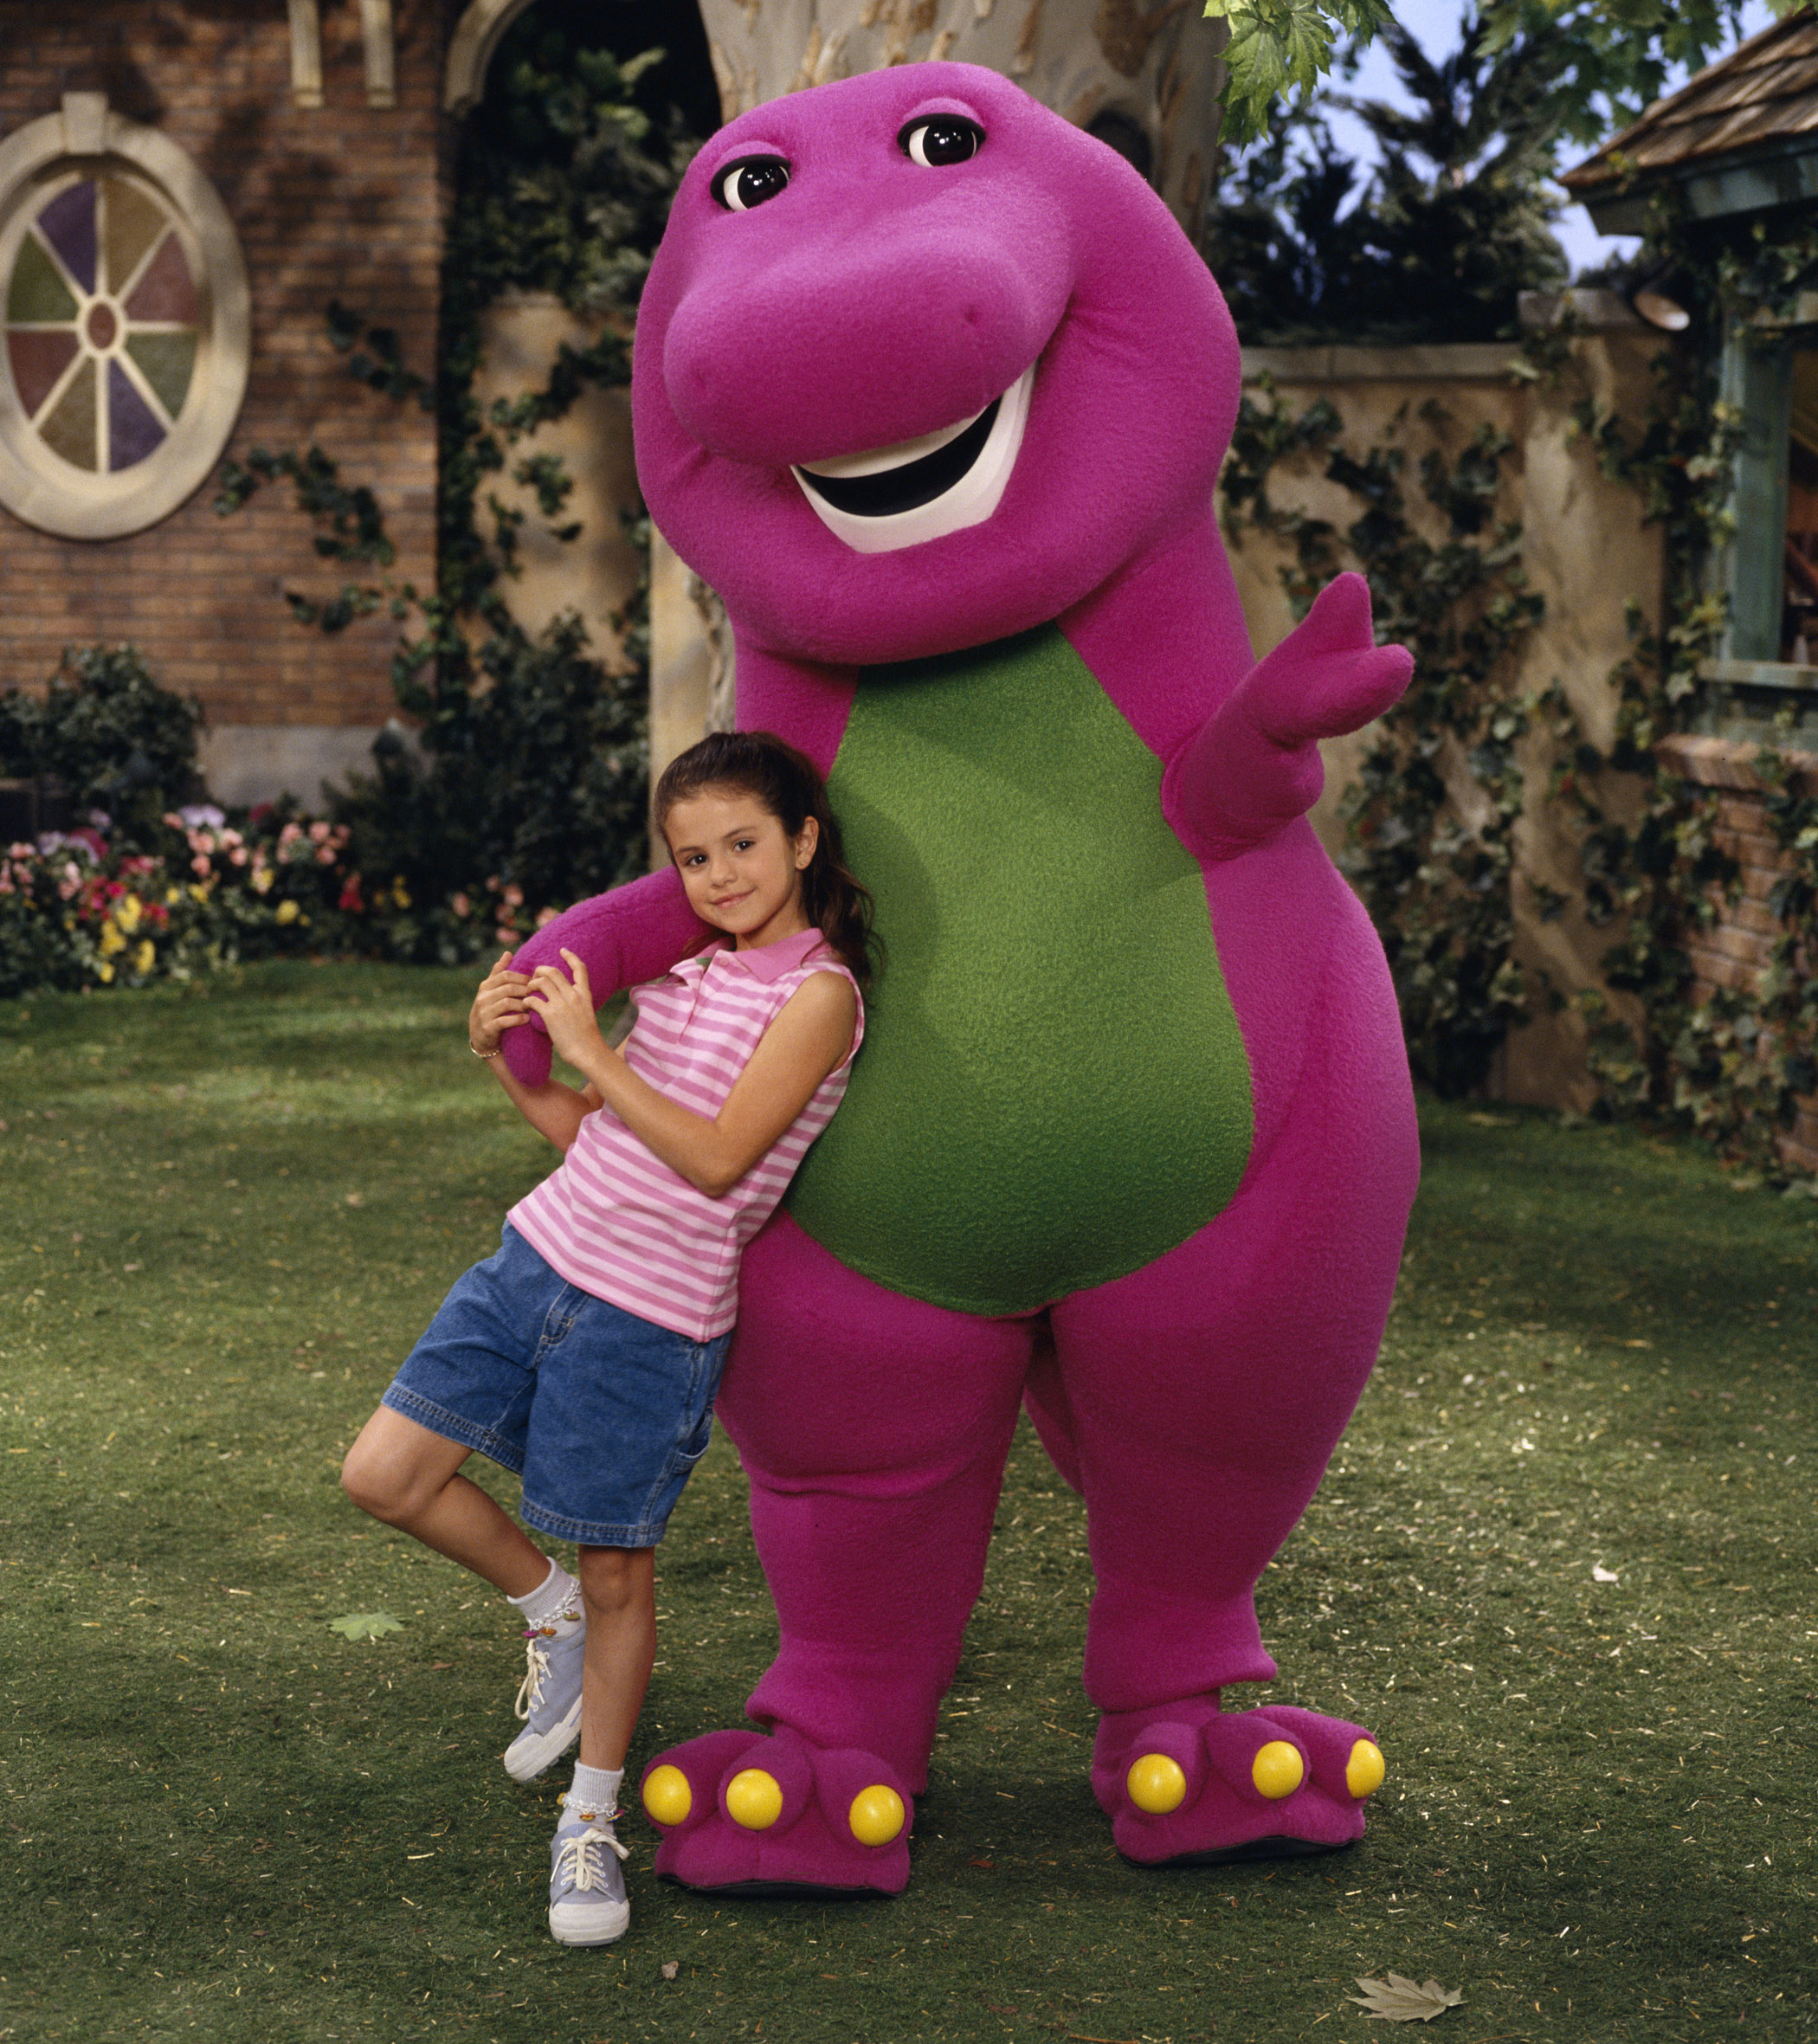 when did barney come out